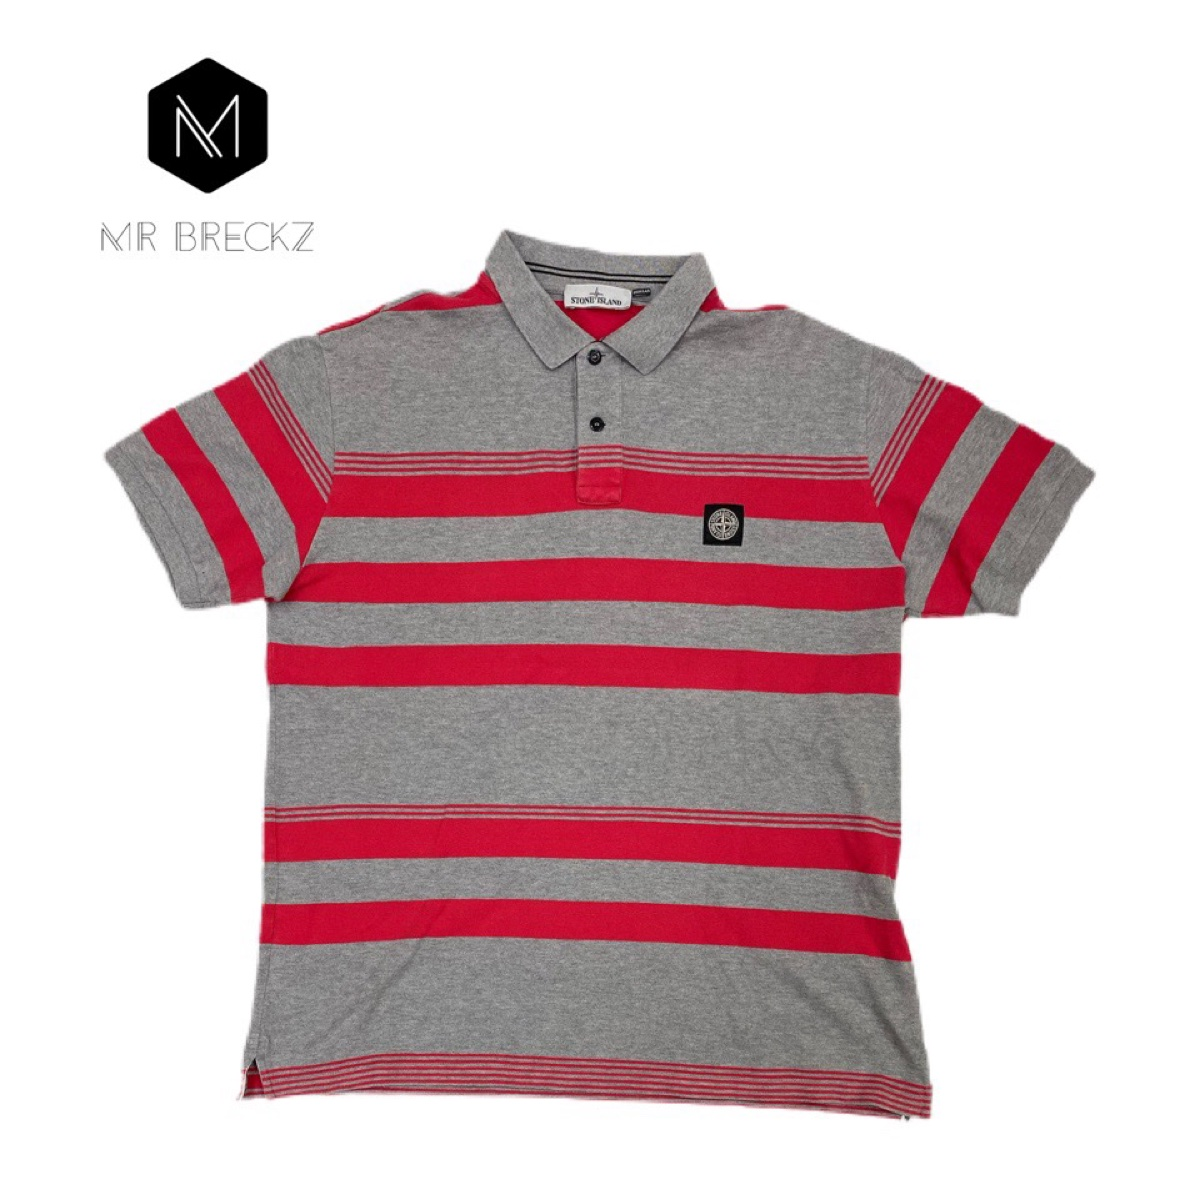 Authentic stone island red & grey striped polo